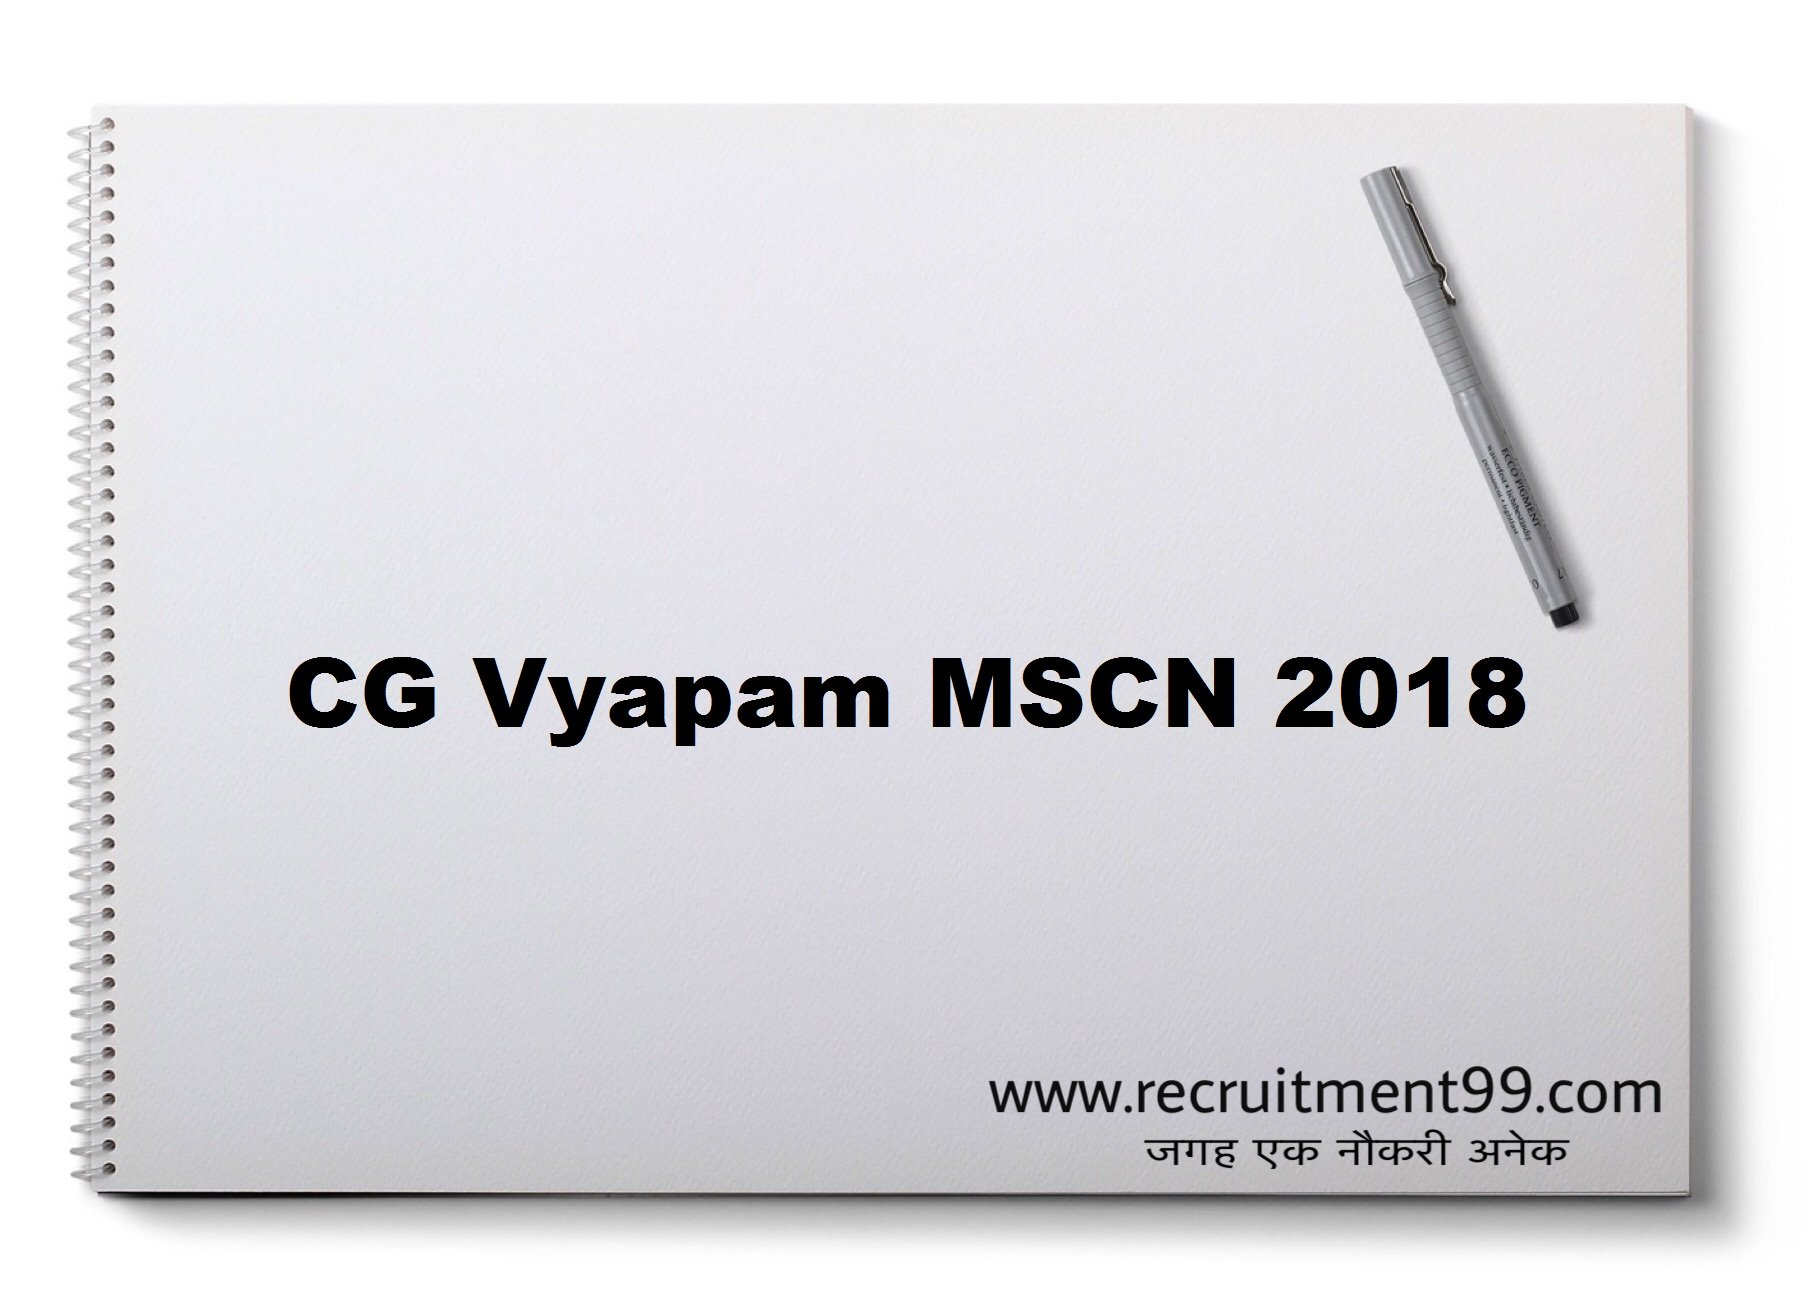 CG Vyapam MSCN Entrance Admit Card Result Counseling 2018